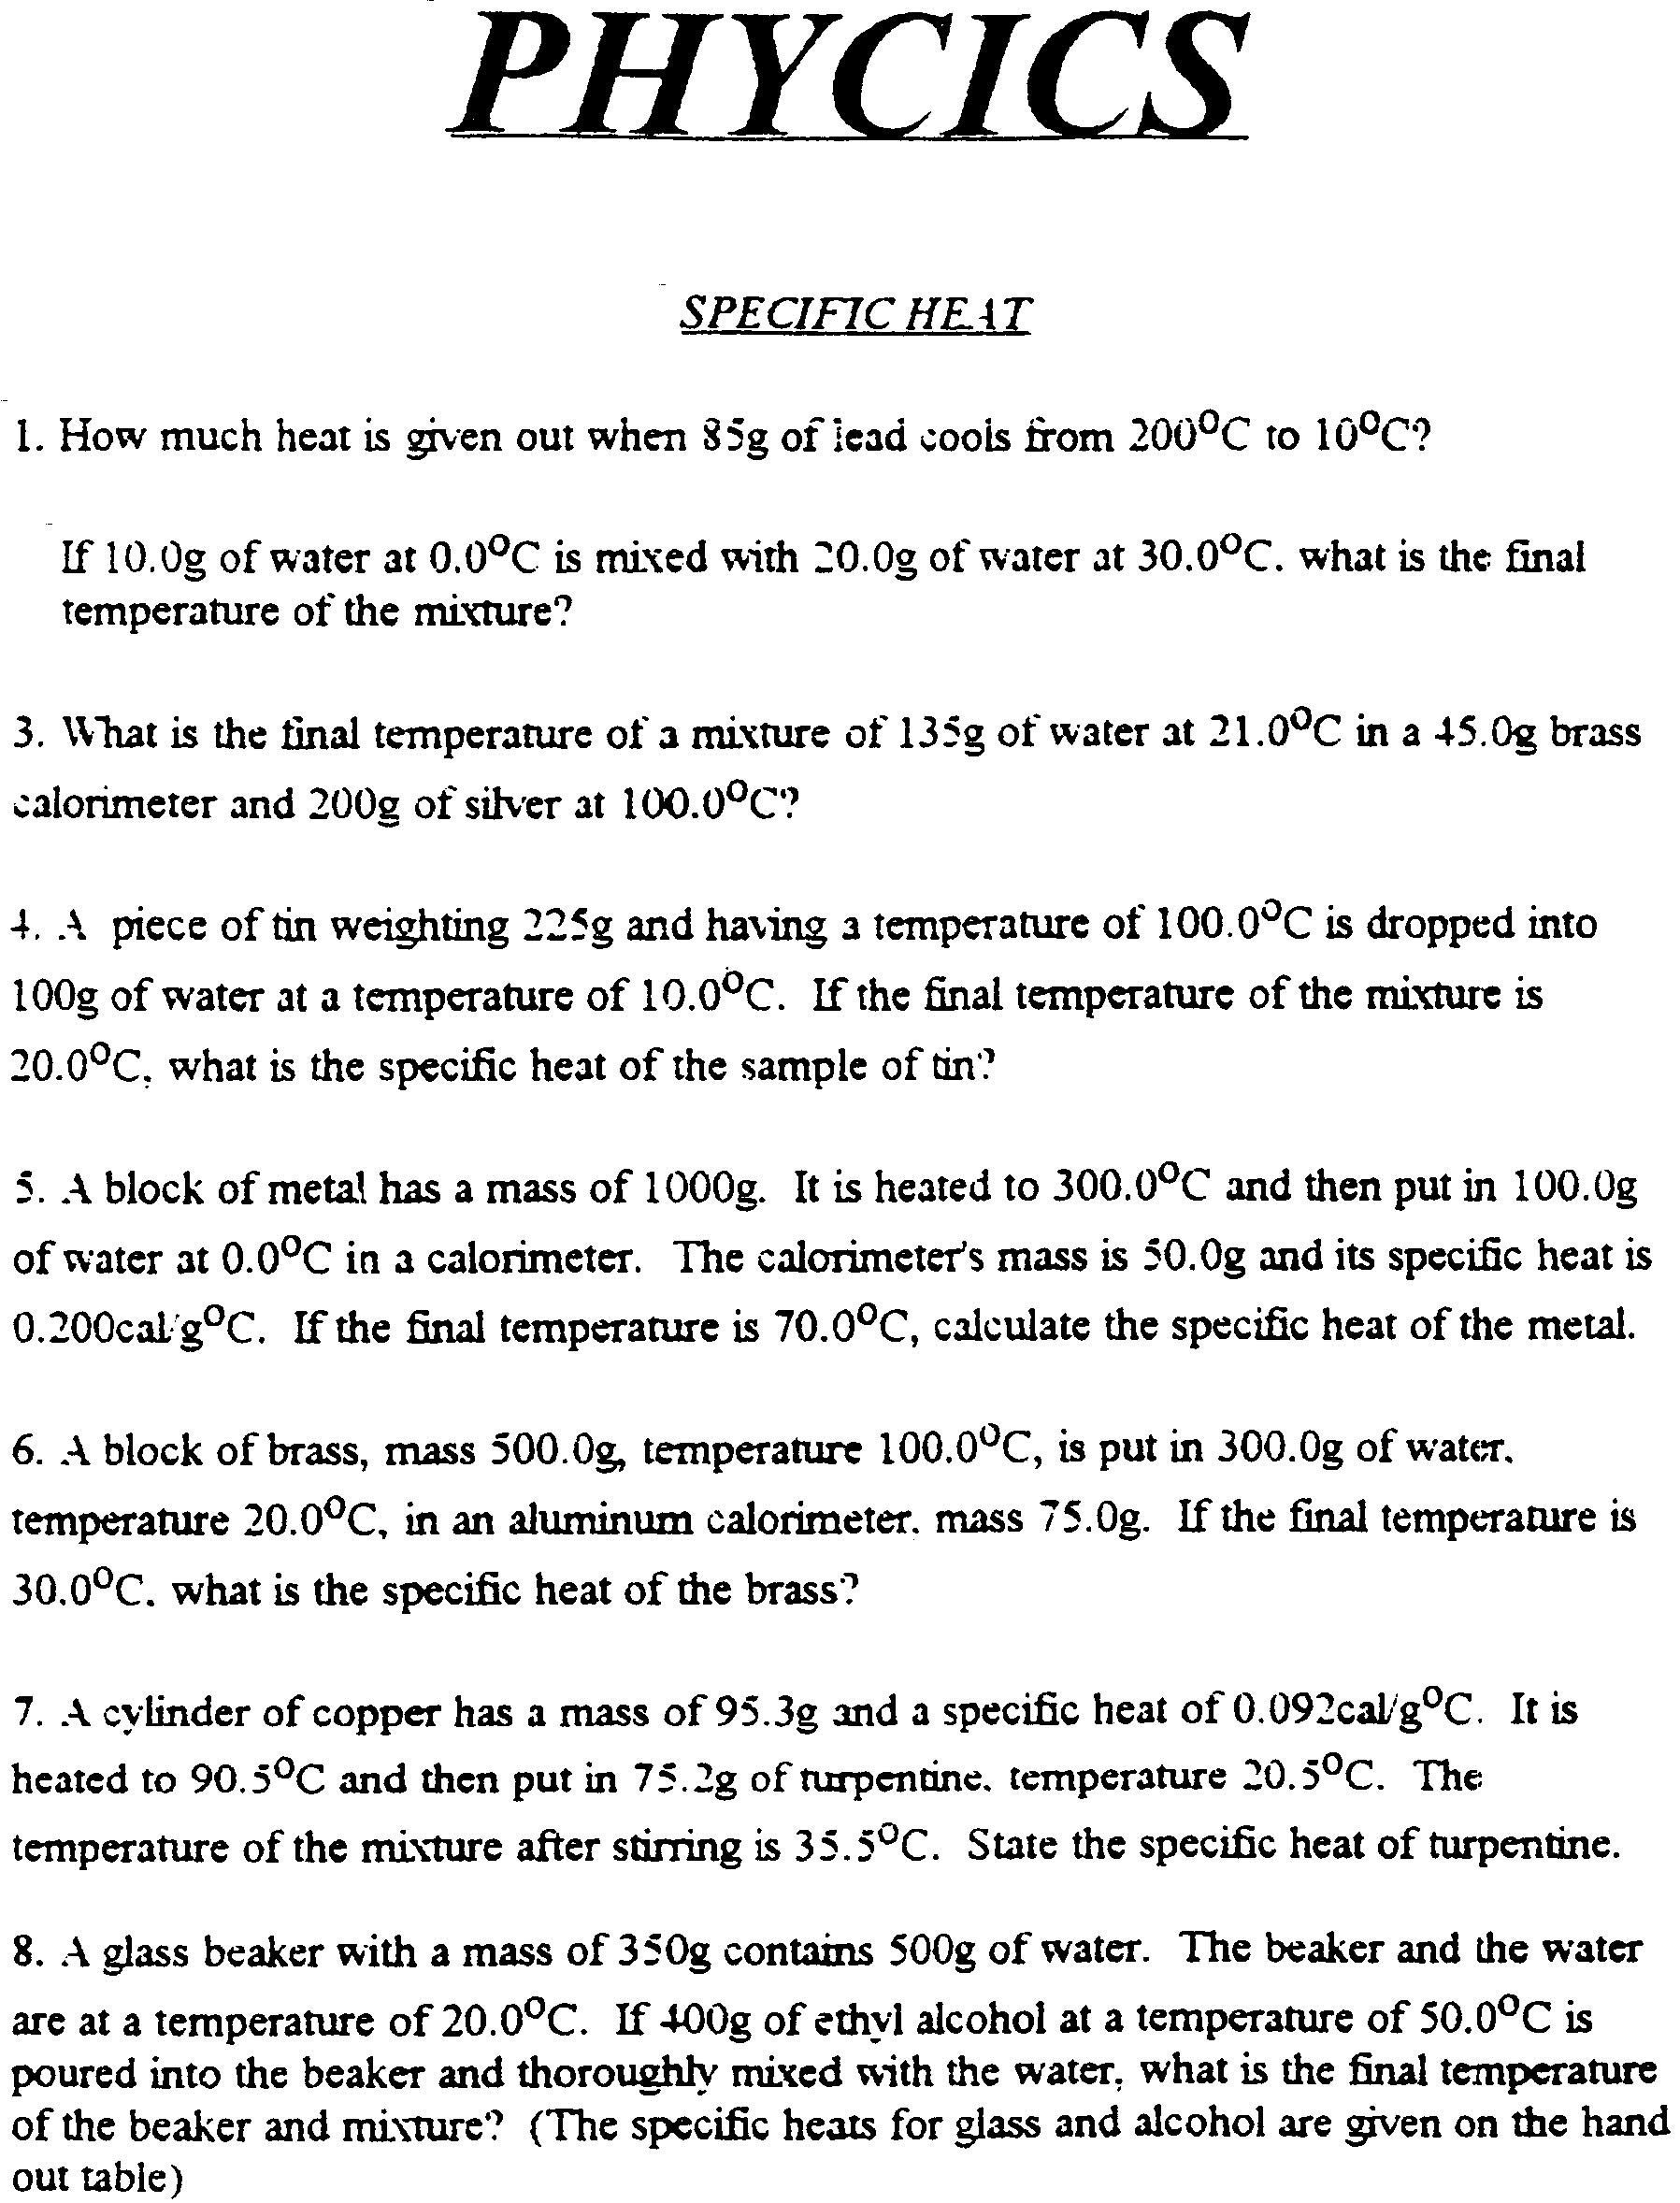 specific heat capacity and latent relationship quizzes